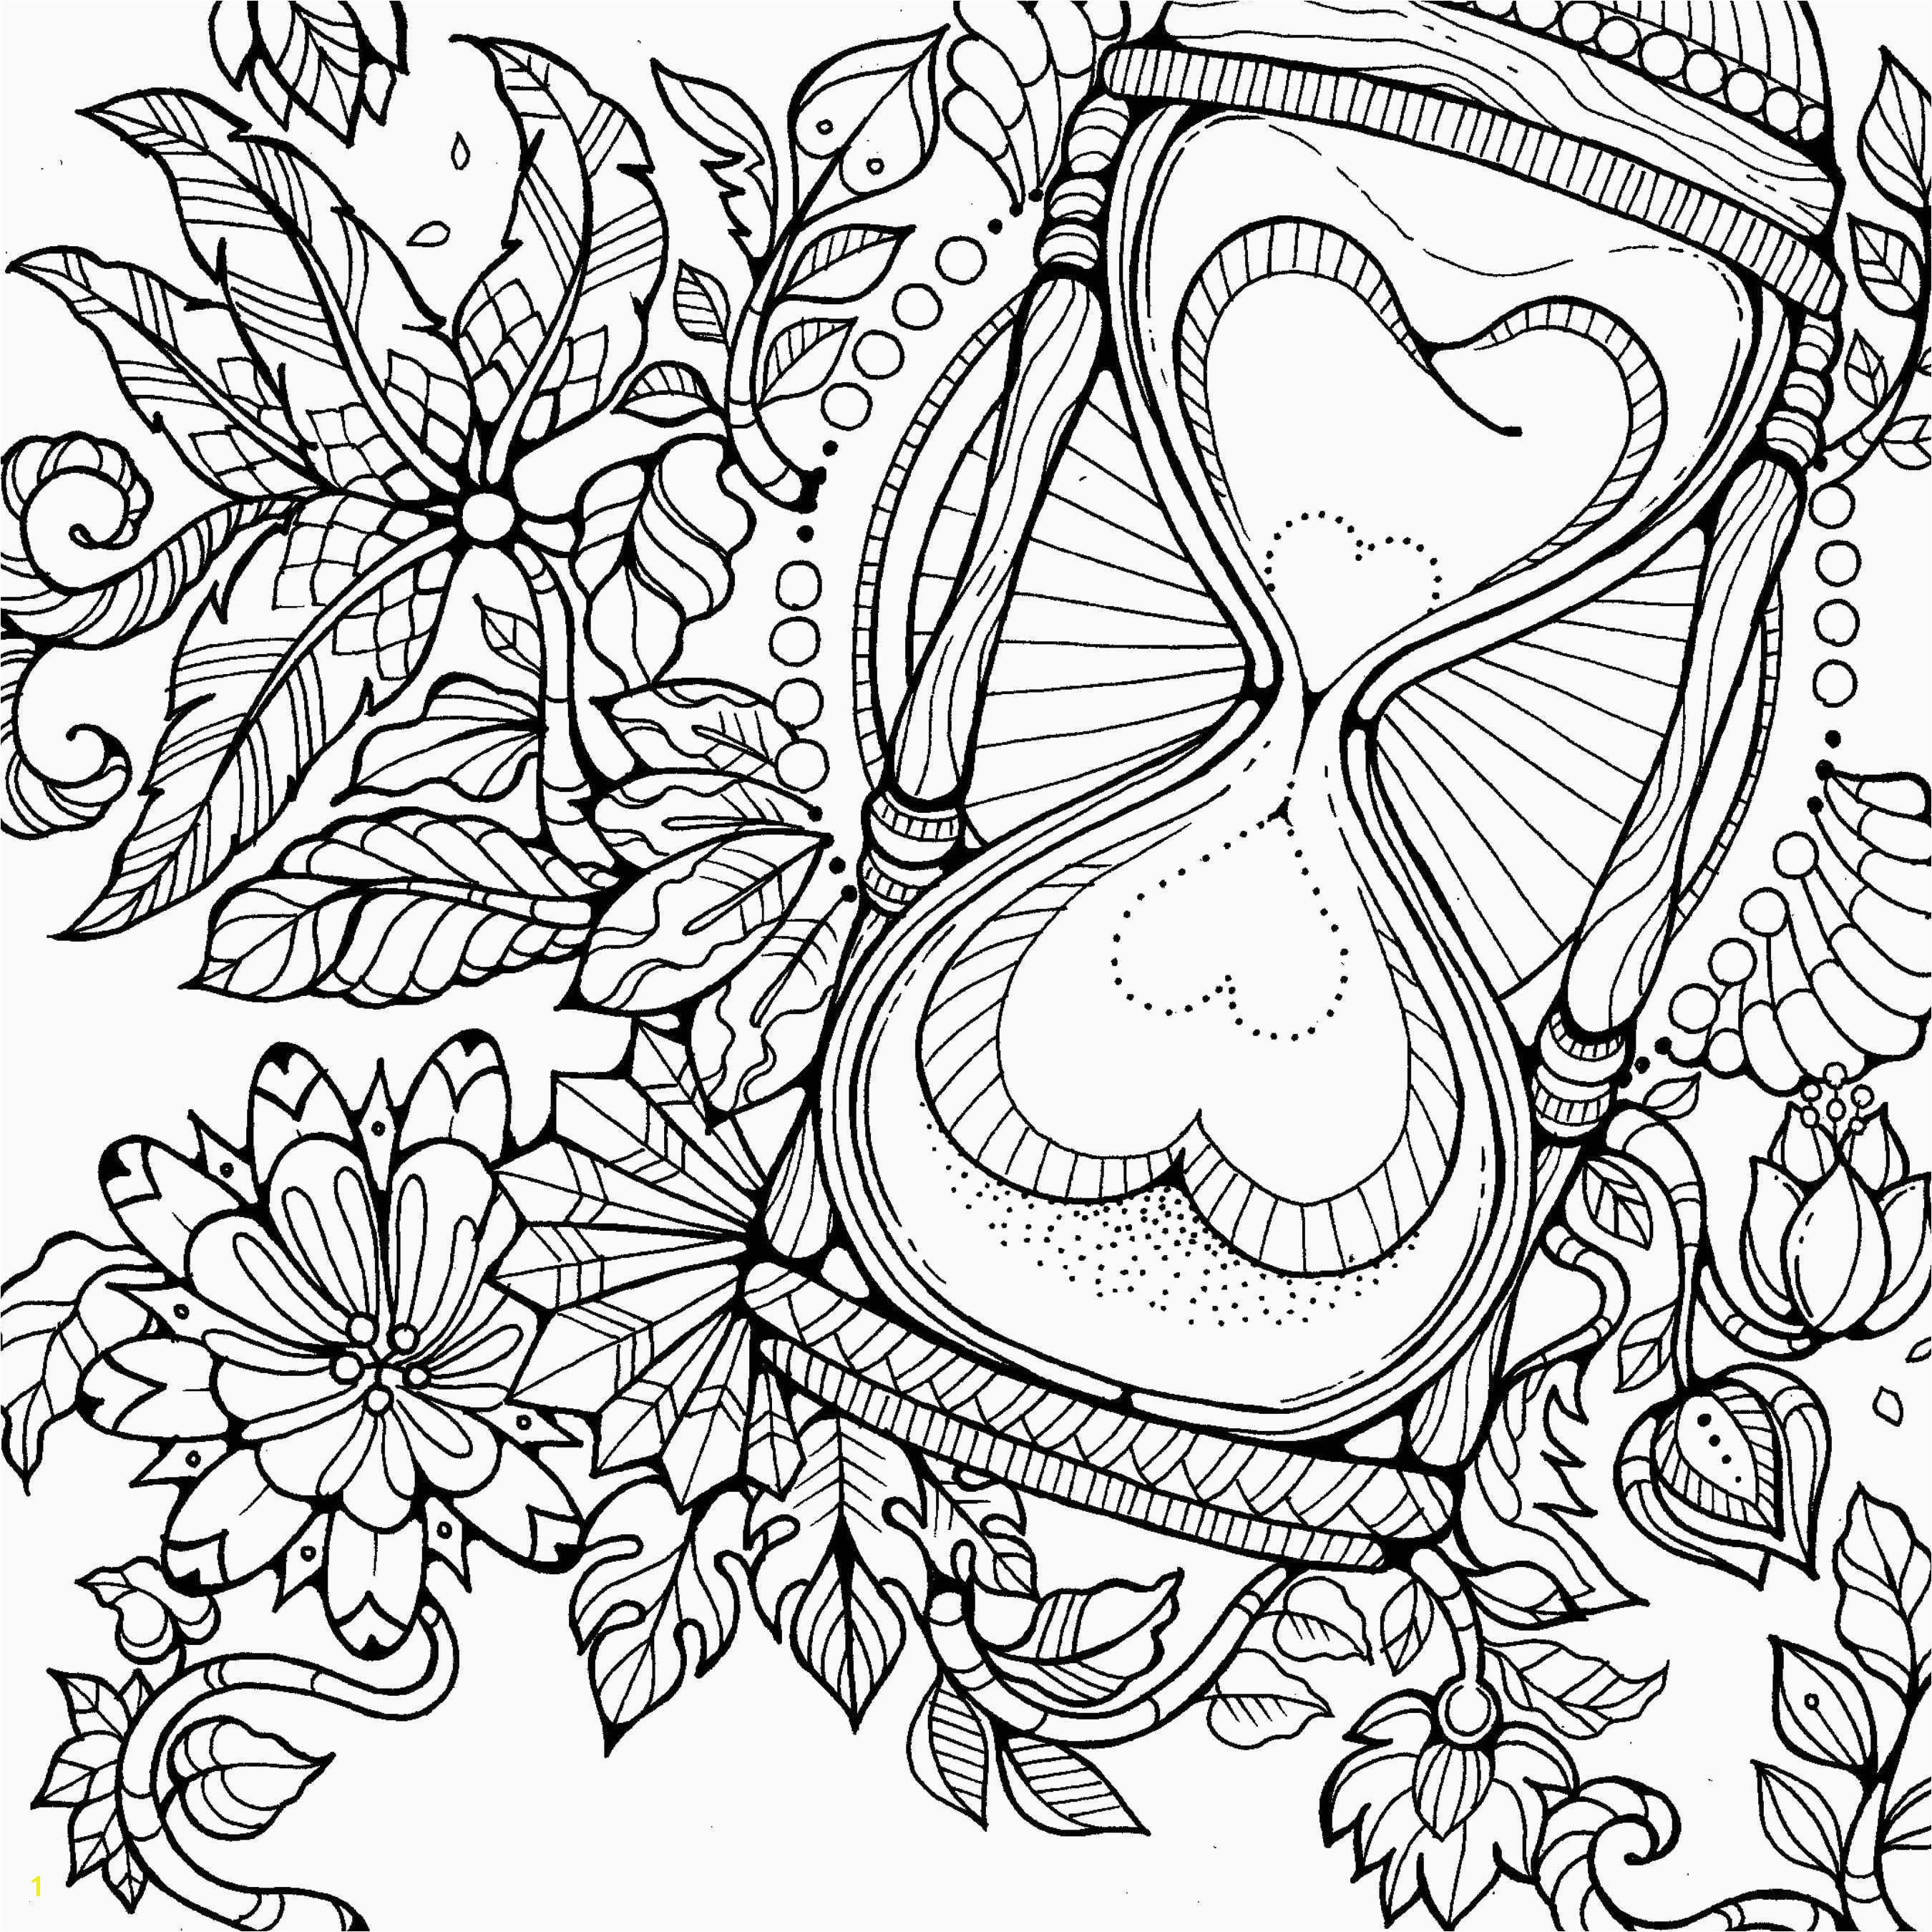 Christmas Coloring Pages Lds Coloring Pages I Love Grandma 2018 Merry Christmas Grandma Coloring